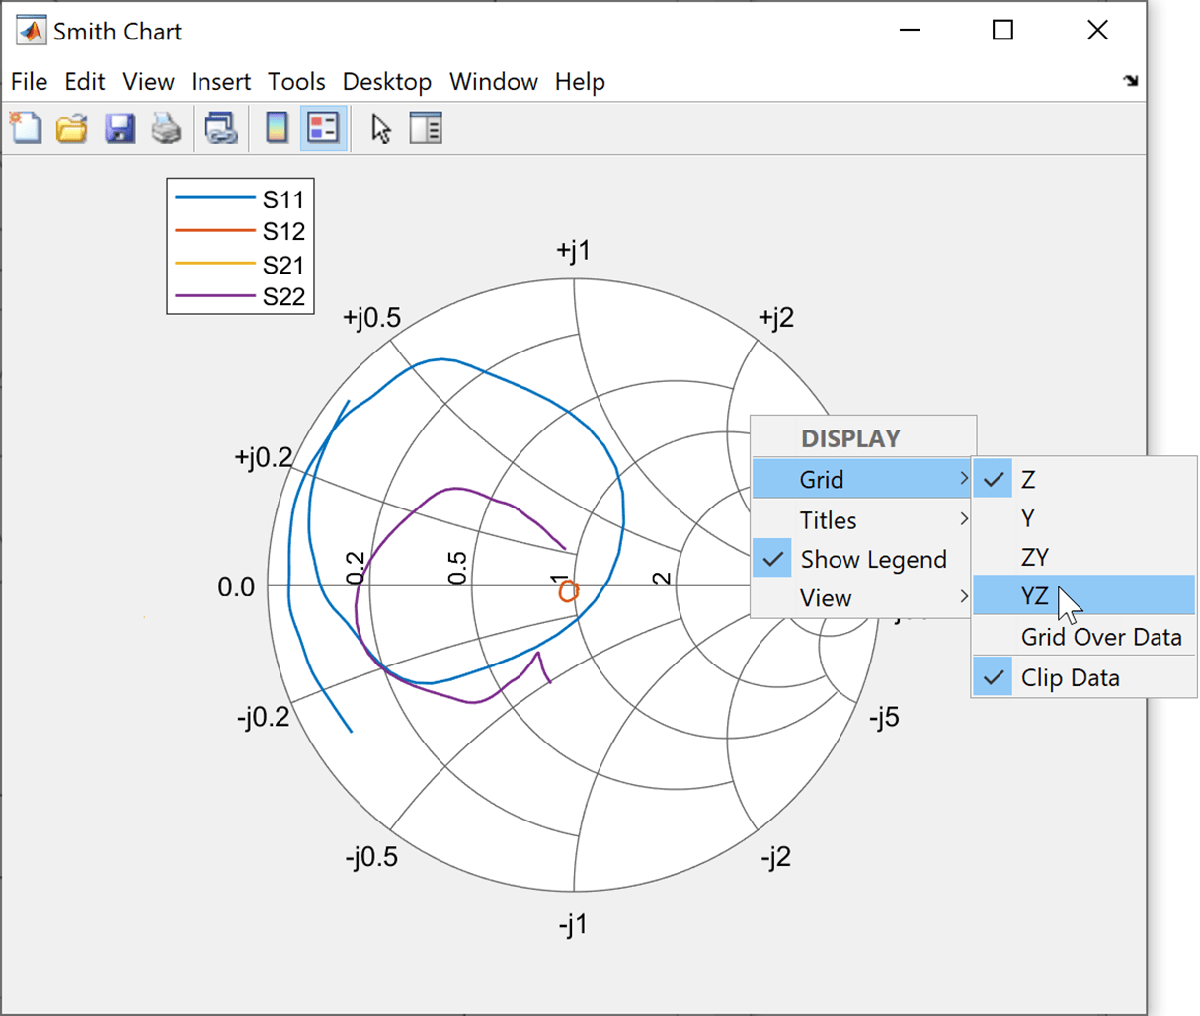 Plot Measurement Data On Smith Chart